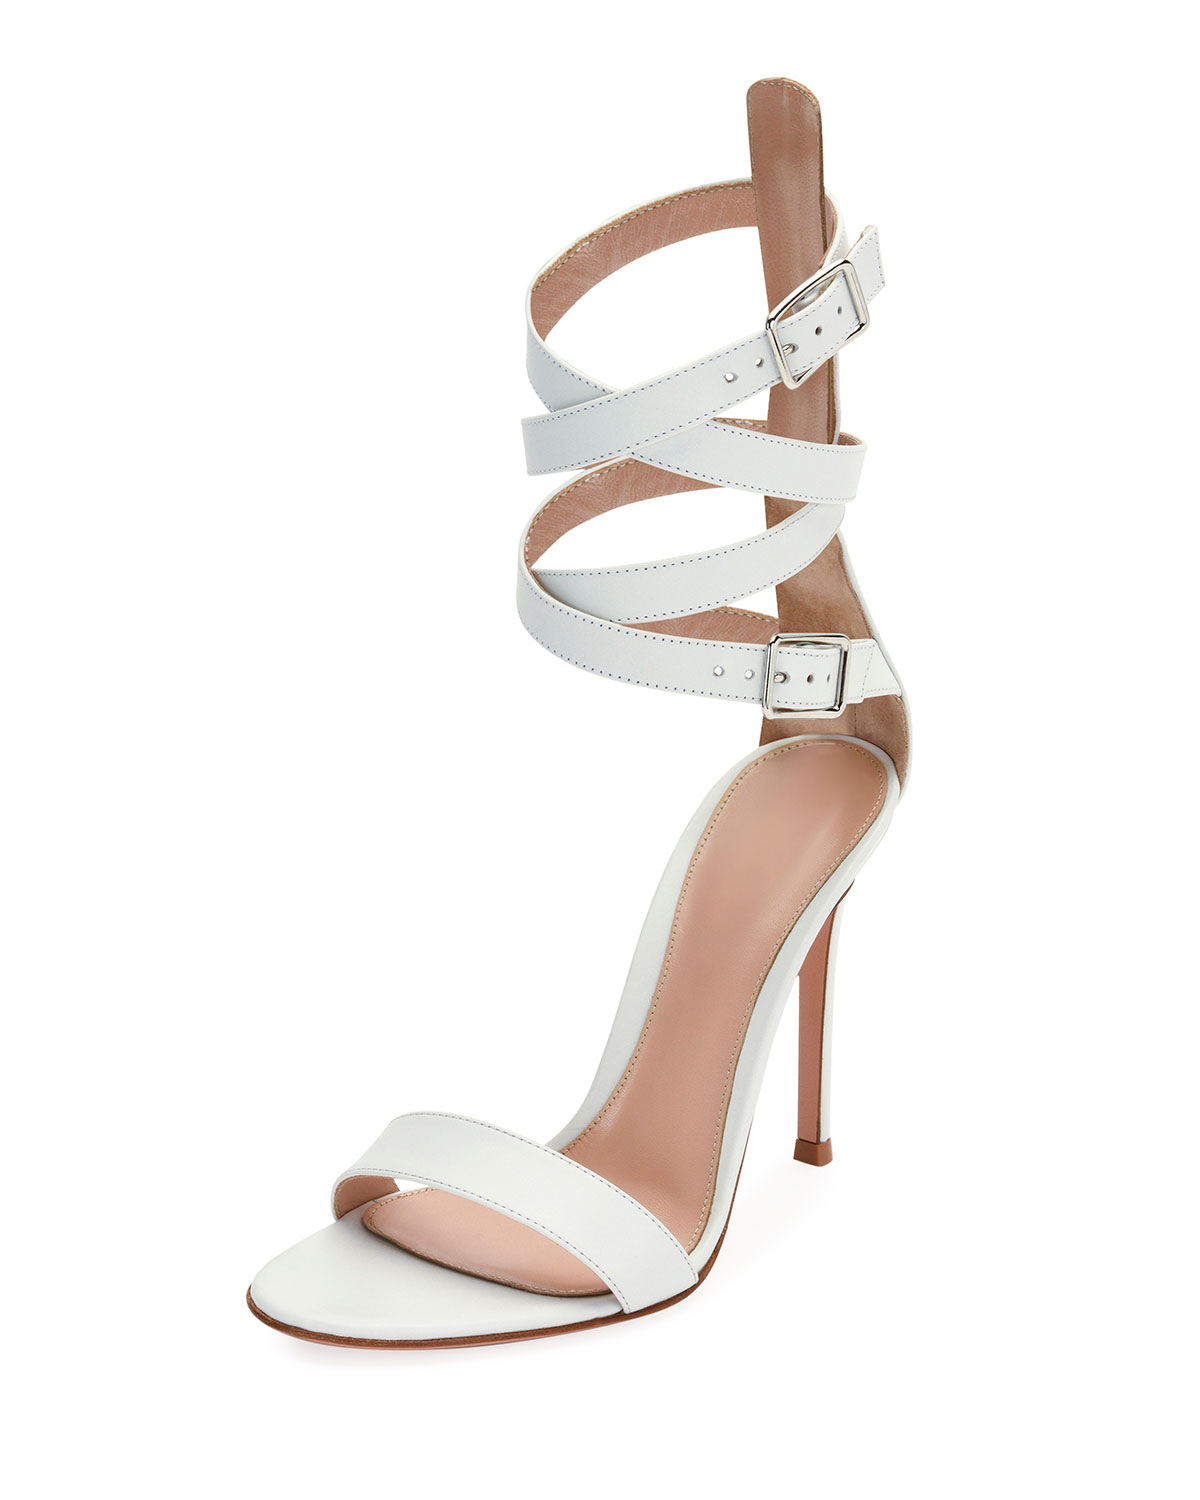 Leather Ankle-Wrap Sandal, White